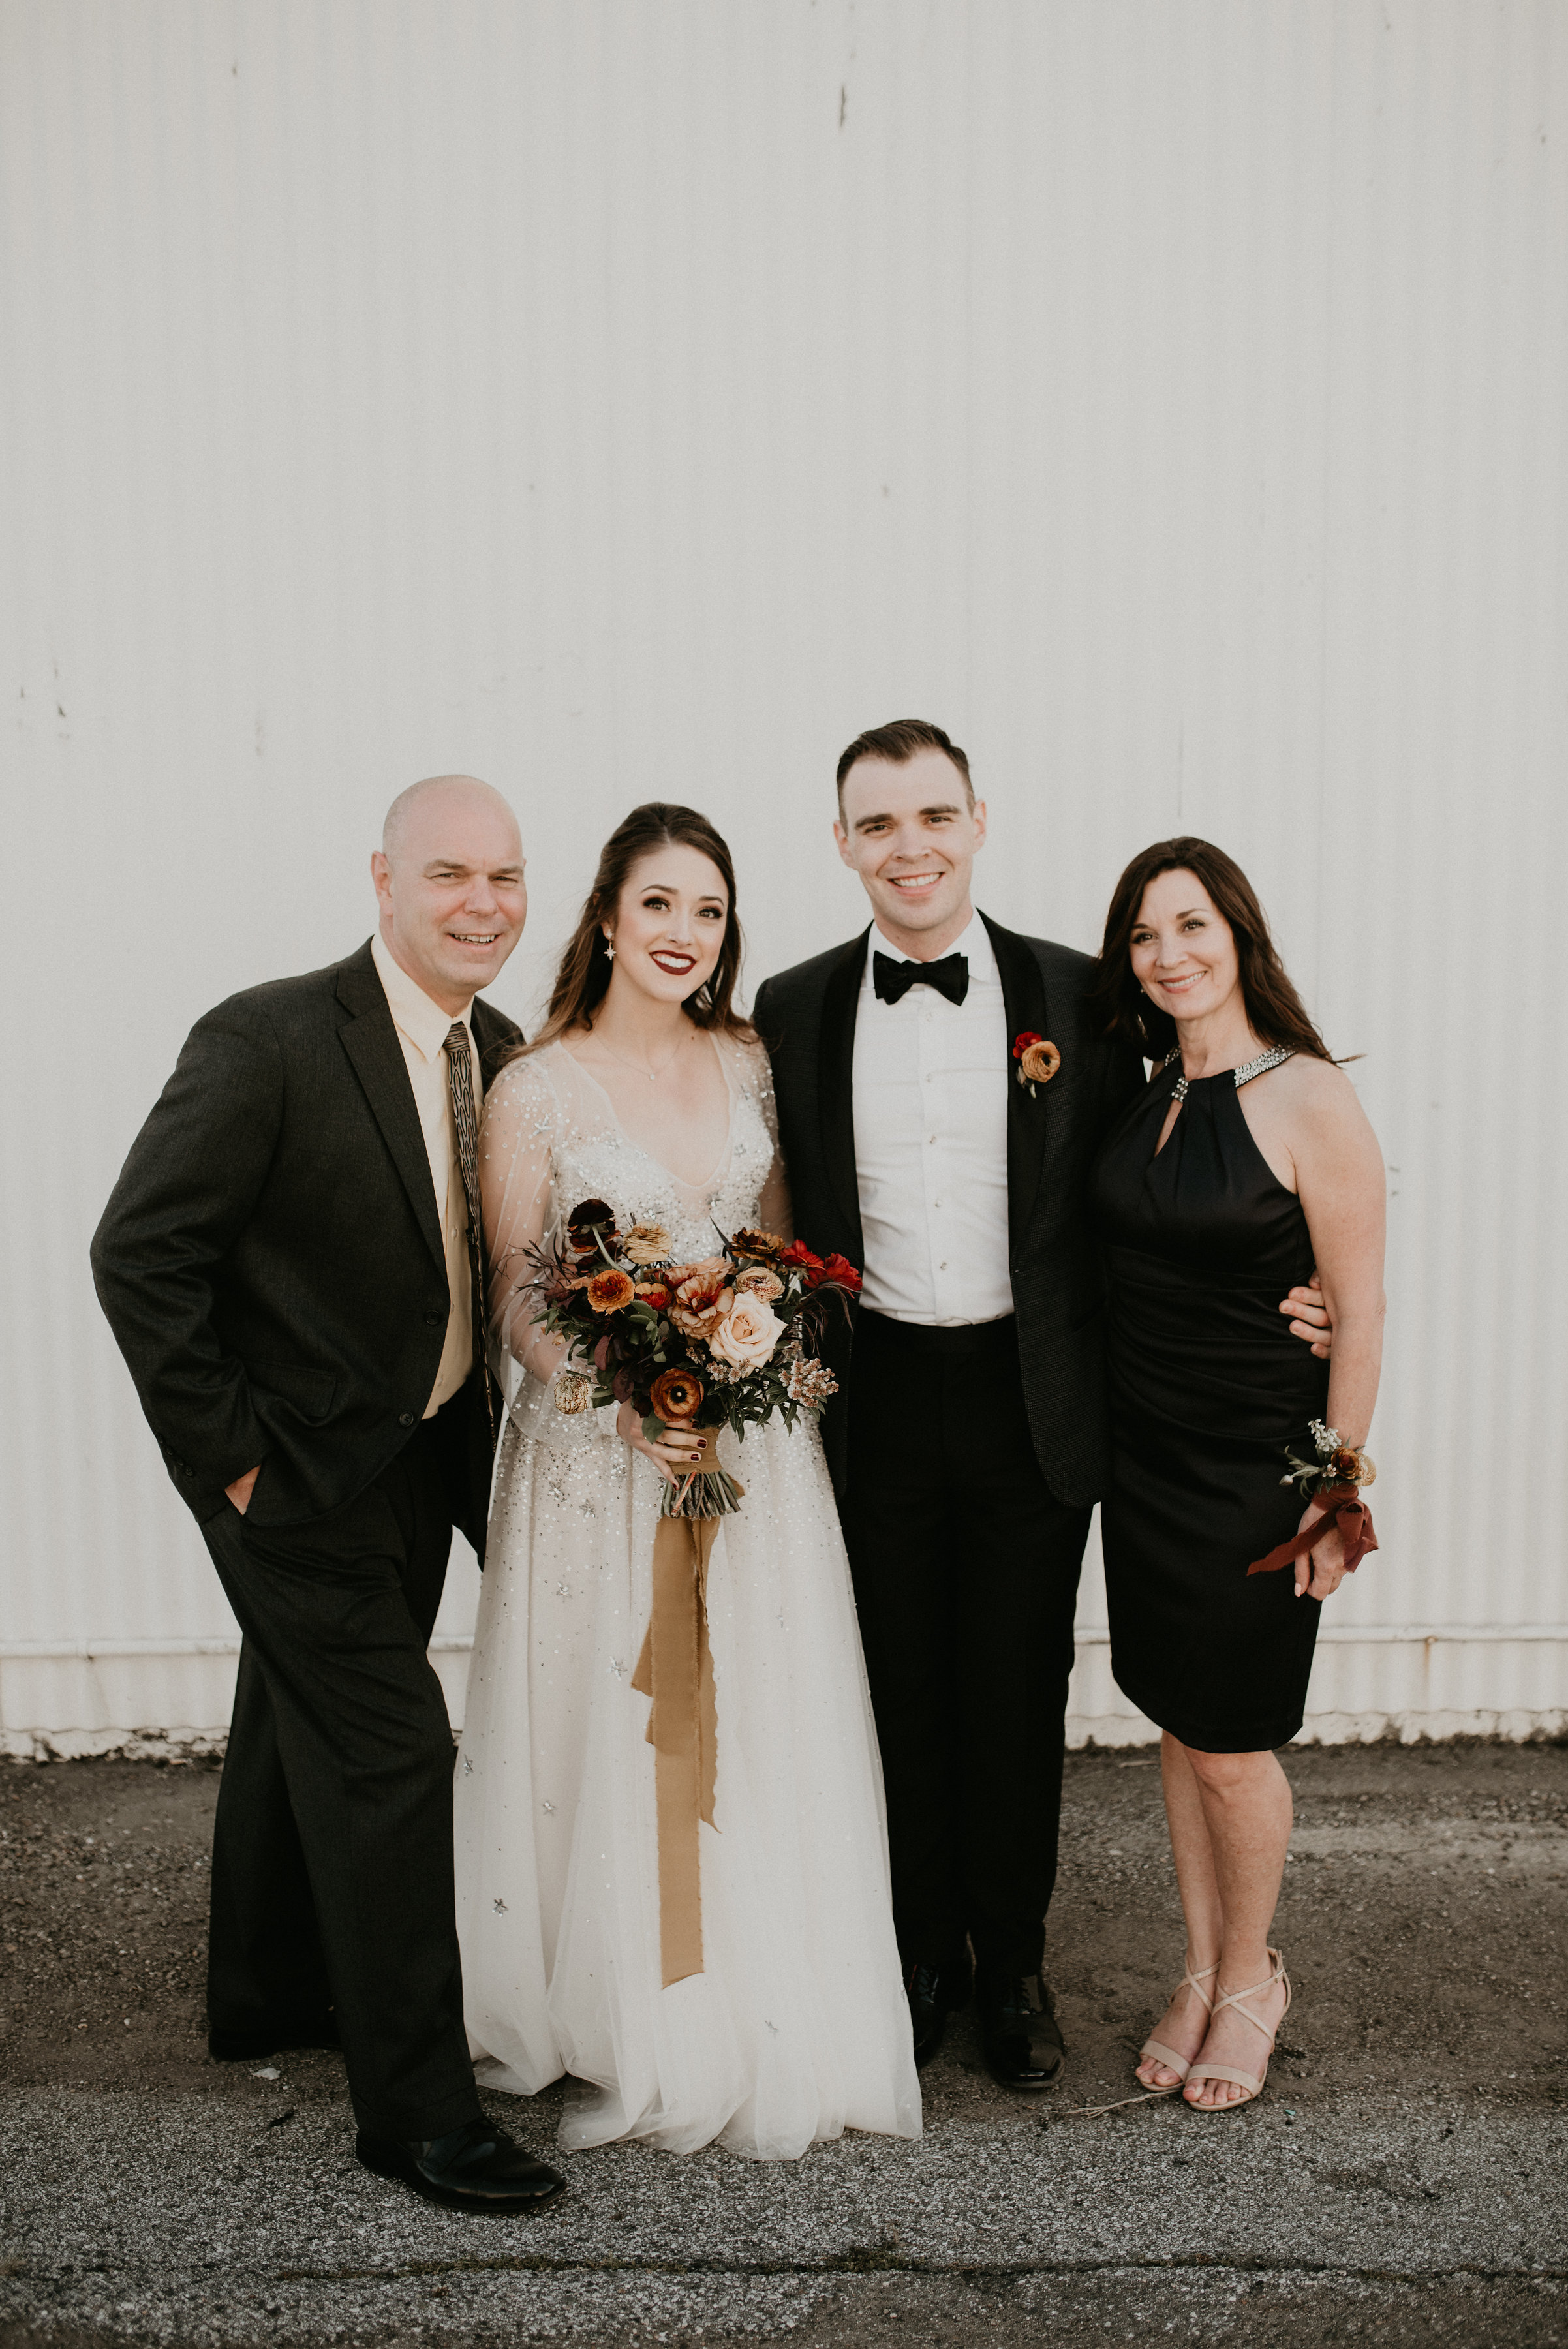 With my new parents-in-law at the wedding.